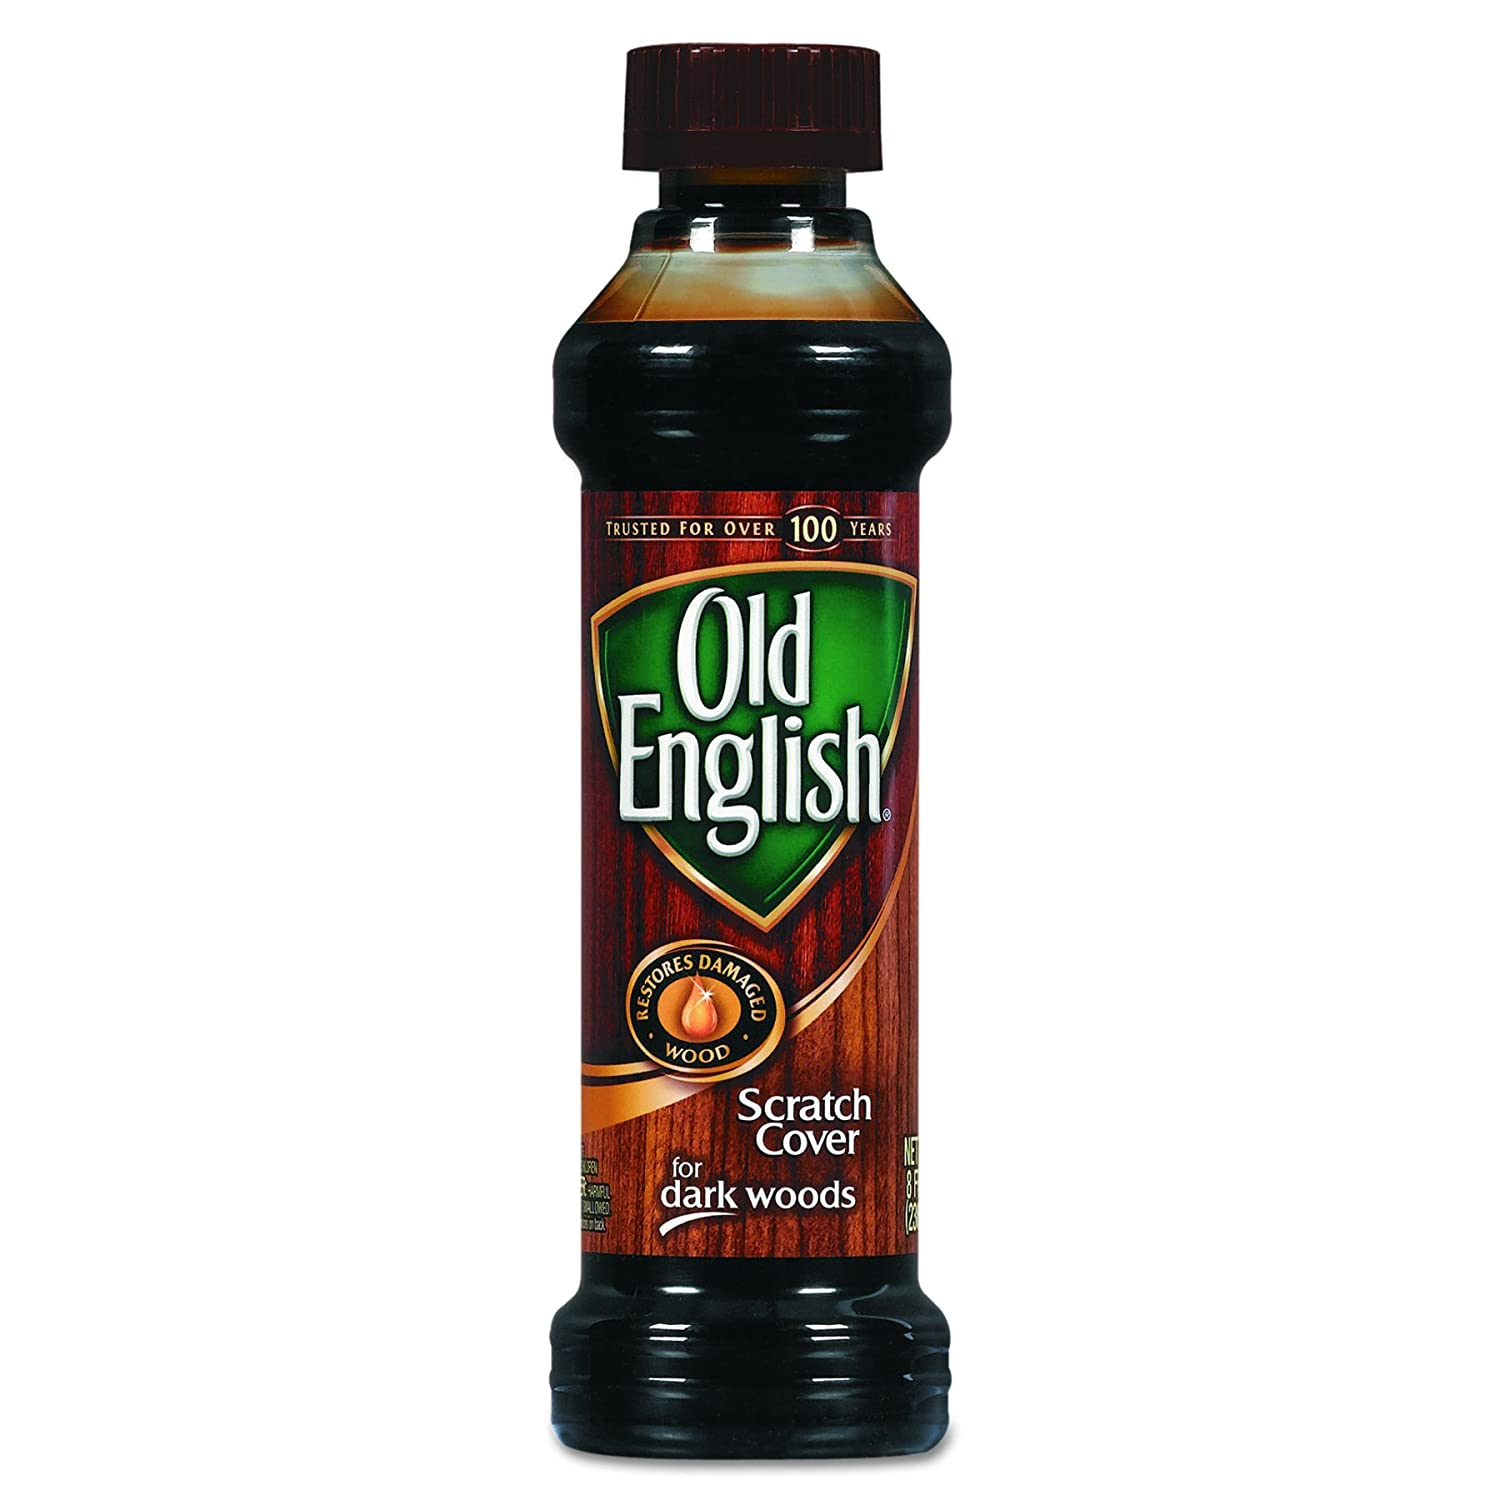 OLD ENGLISH 75144CT Furniture Scratch Cover, For Dark Woods, 8 Oz Bottle (Case of 6)